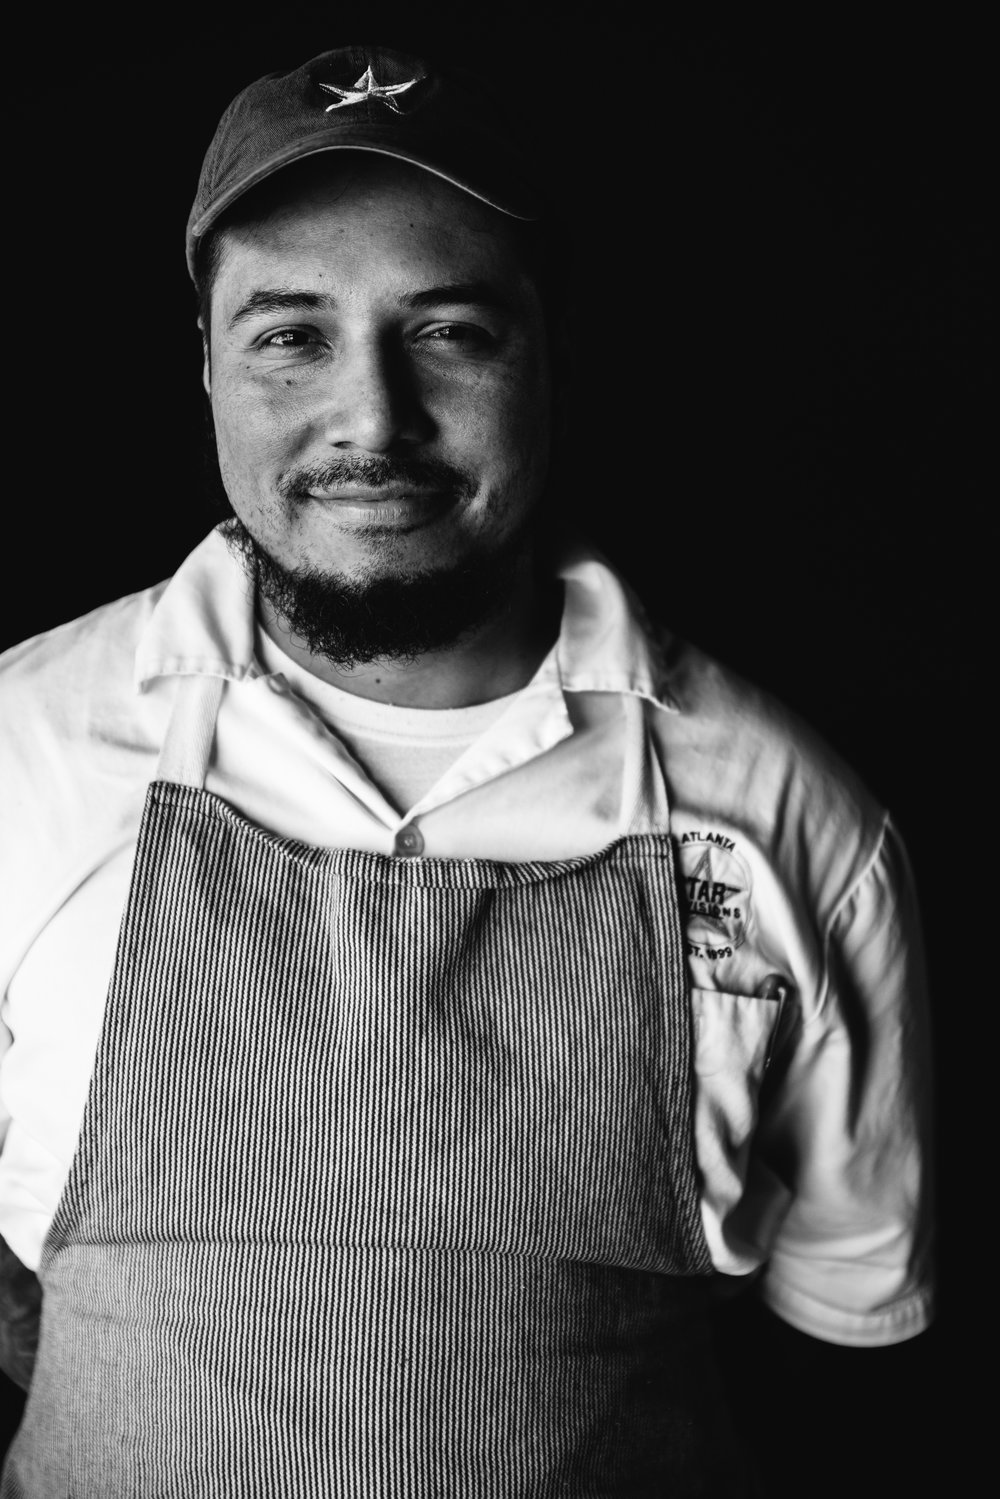 Anibal M. Carranza-Valente,  Chef